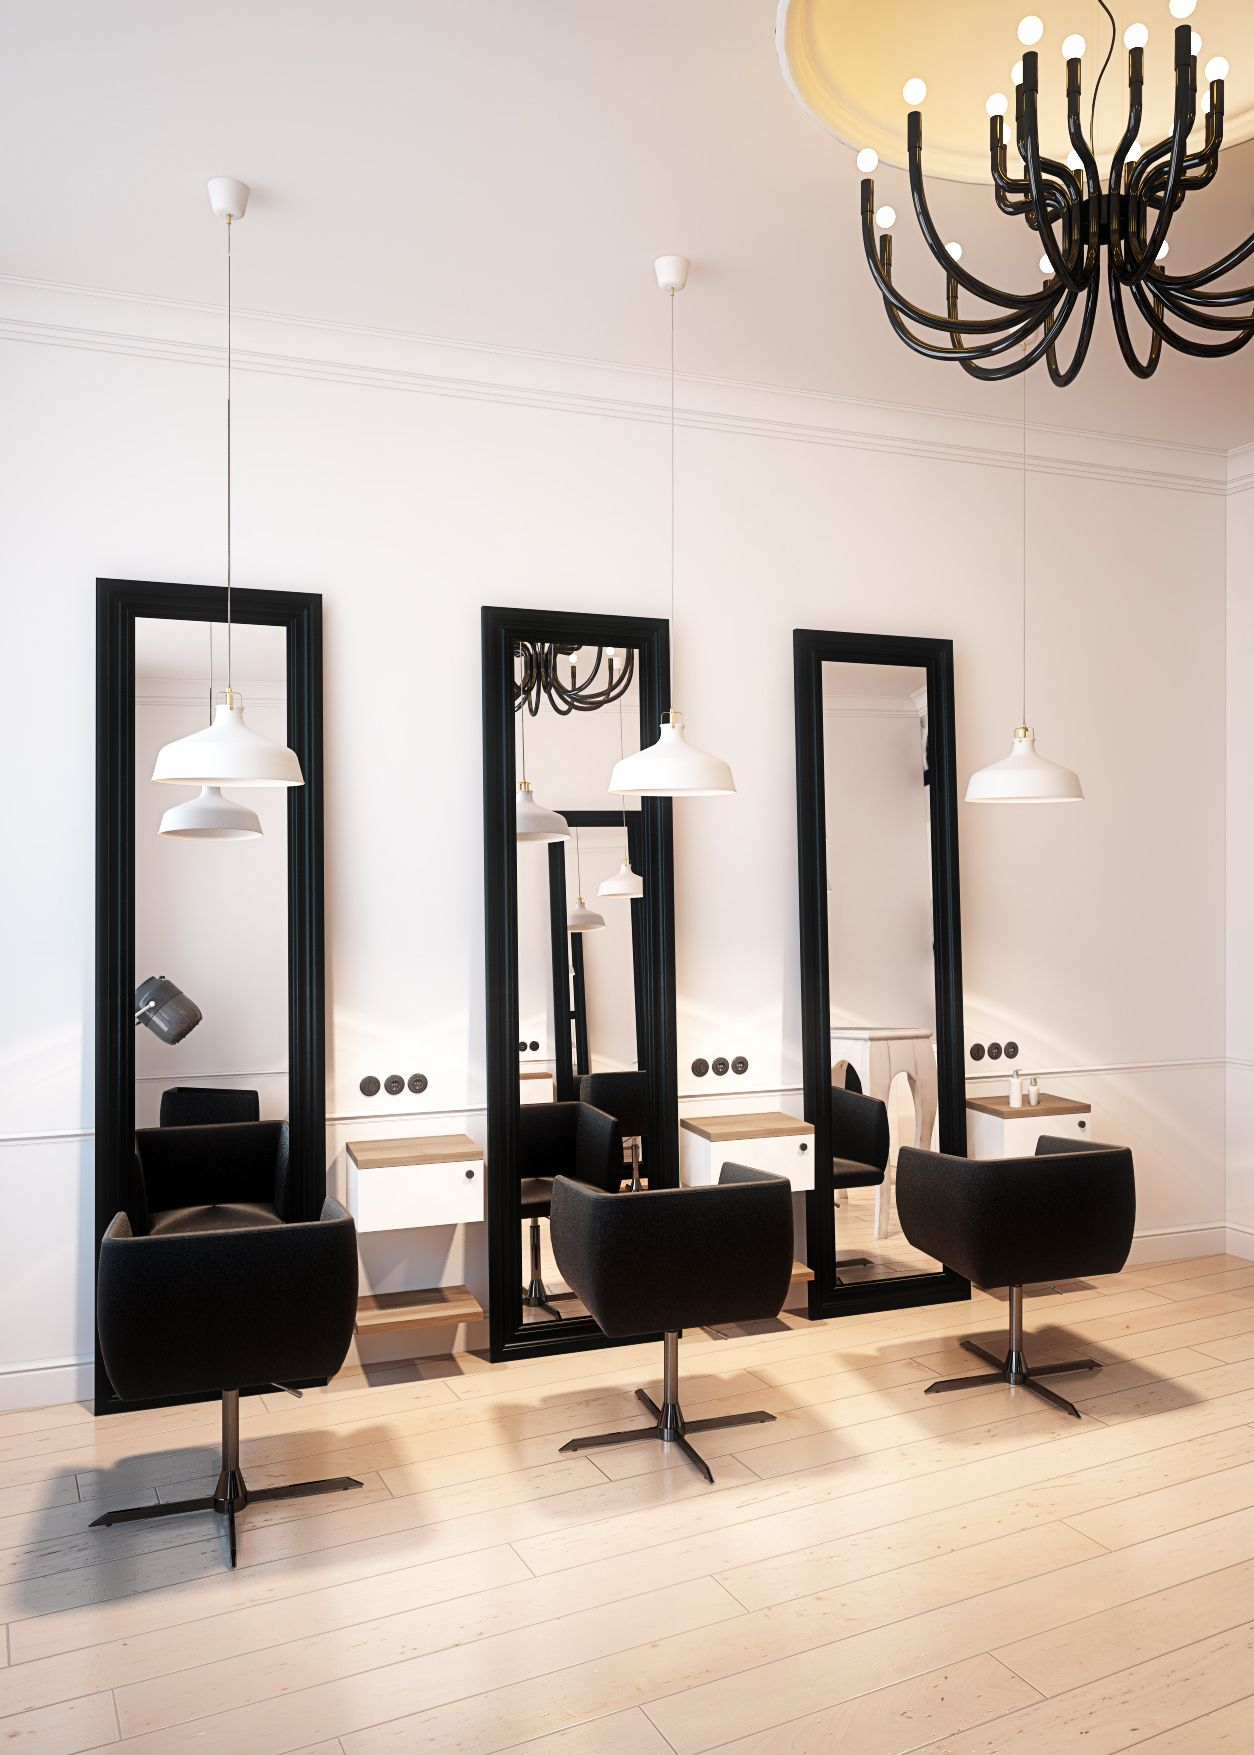 Hairdresser interior design in bytom poland archi group for Decoracion interior salon